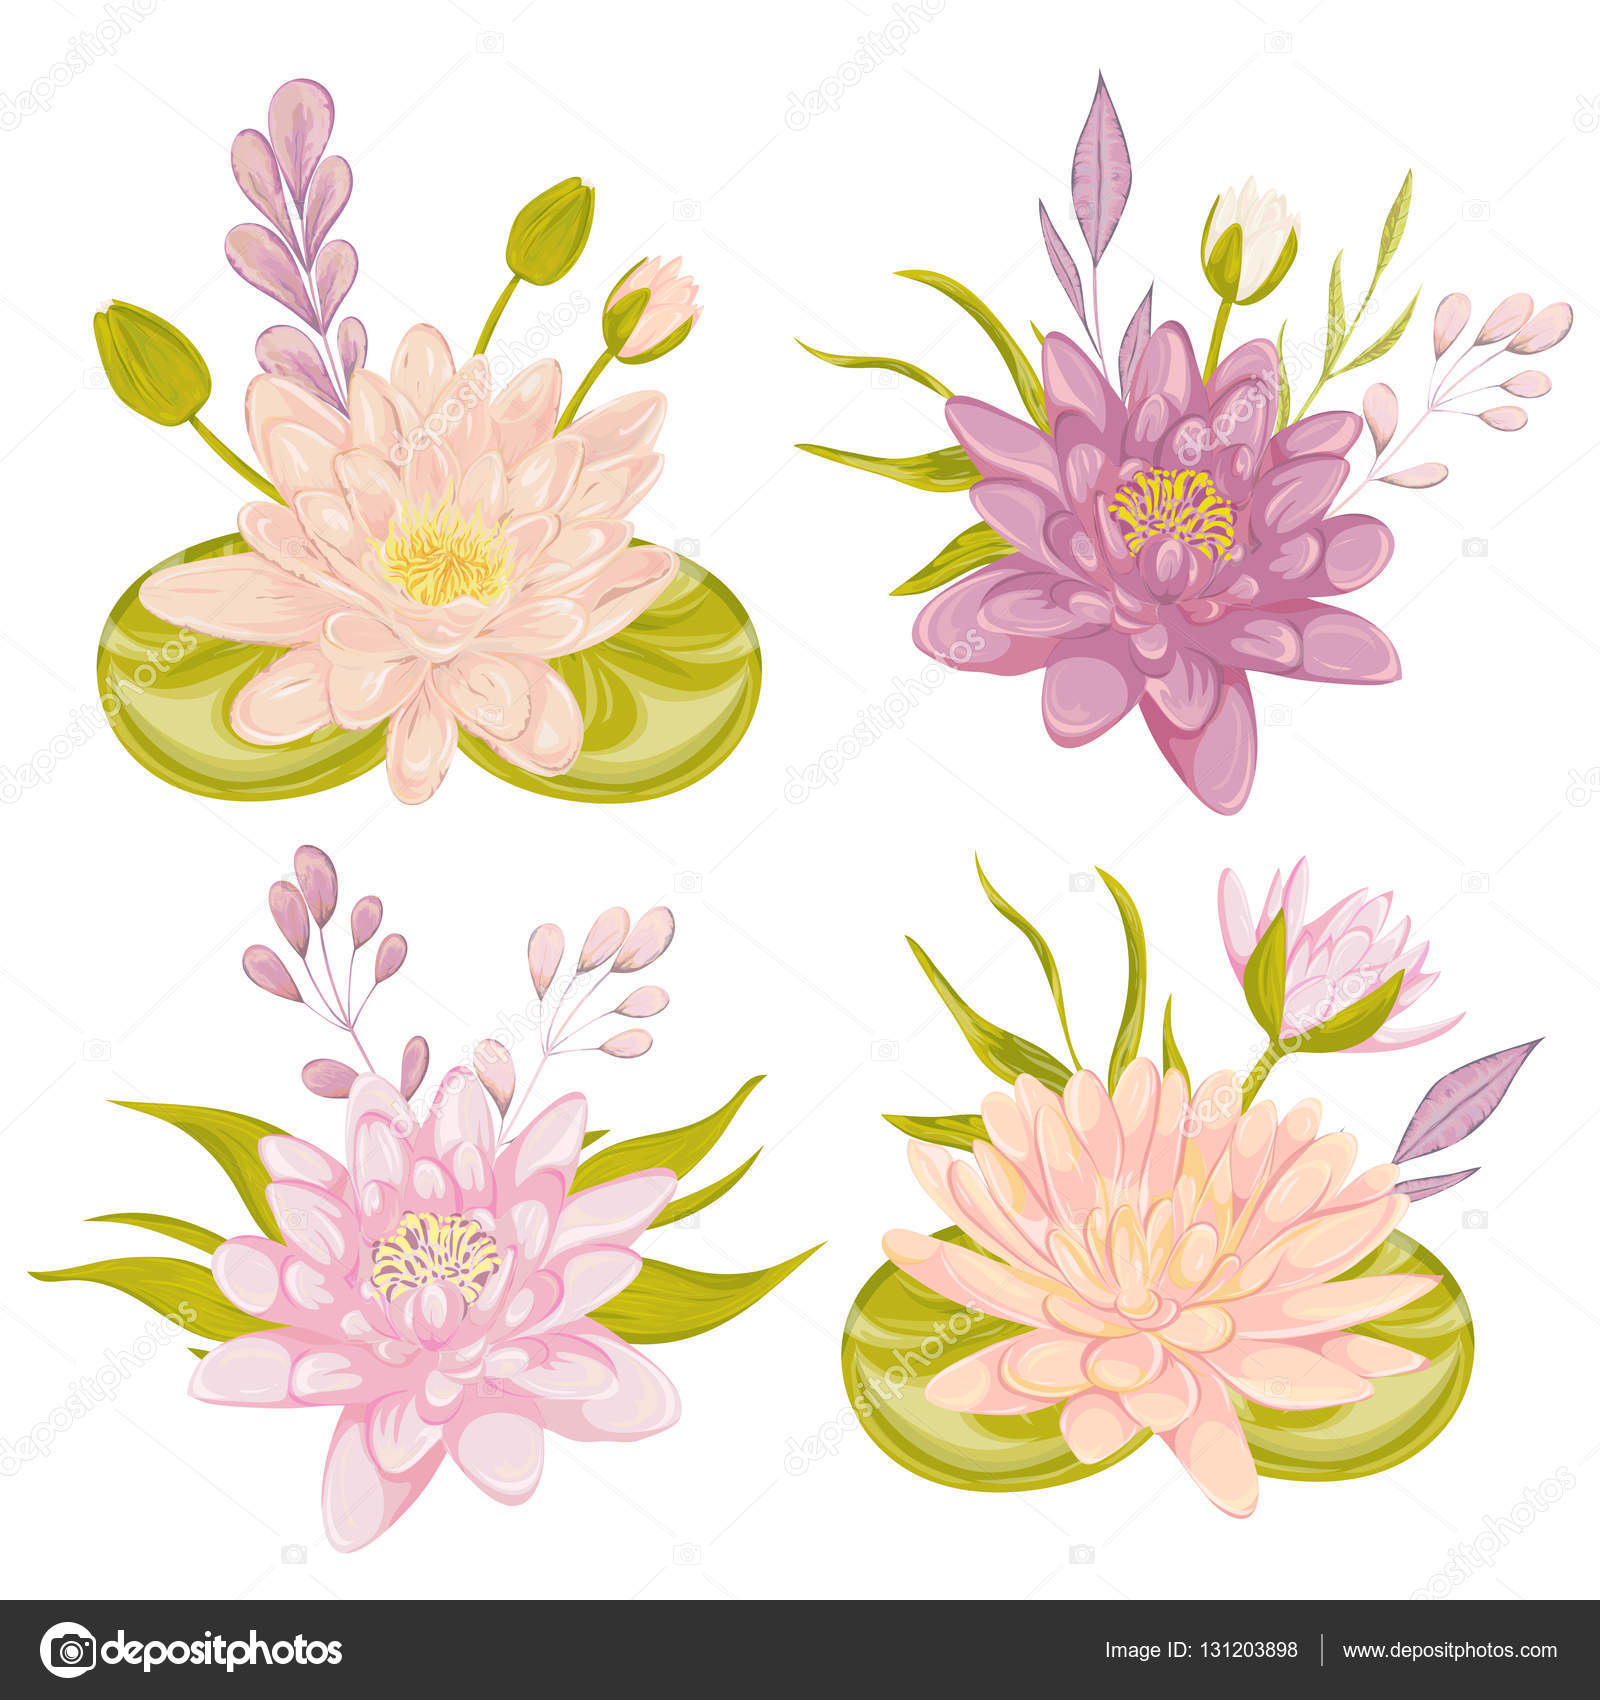 Water lily set collection decorative floral design elements for collection decorative floral design elements for wedding invitations and birthday cards flowers leaves and buds vintage hand drawn vector illustration in izmirmasajfo Choice Image